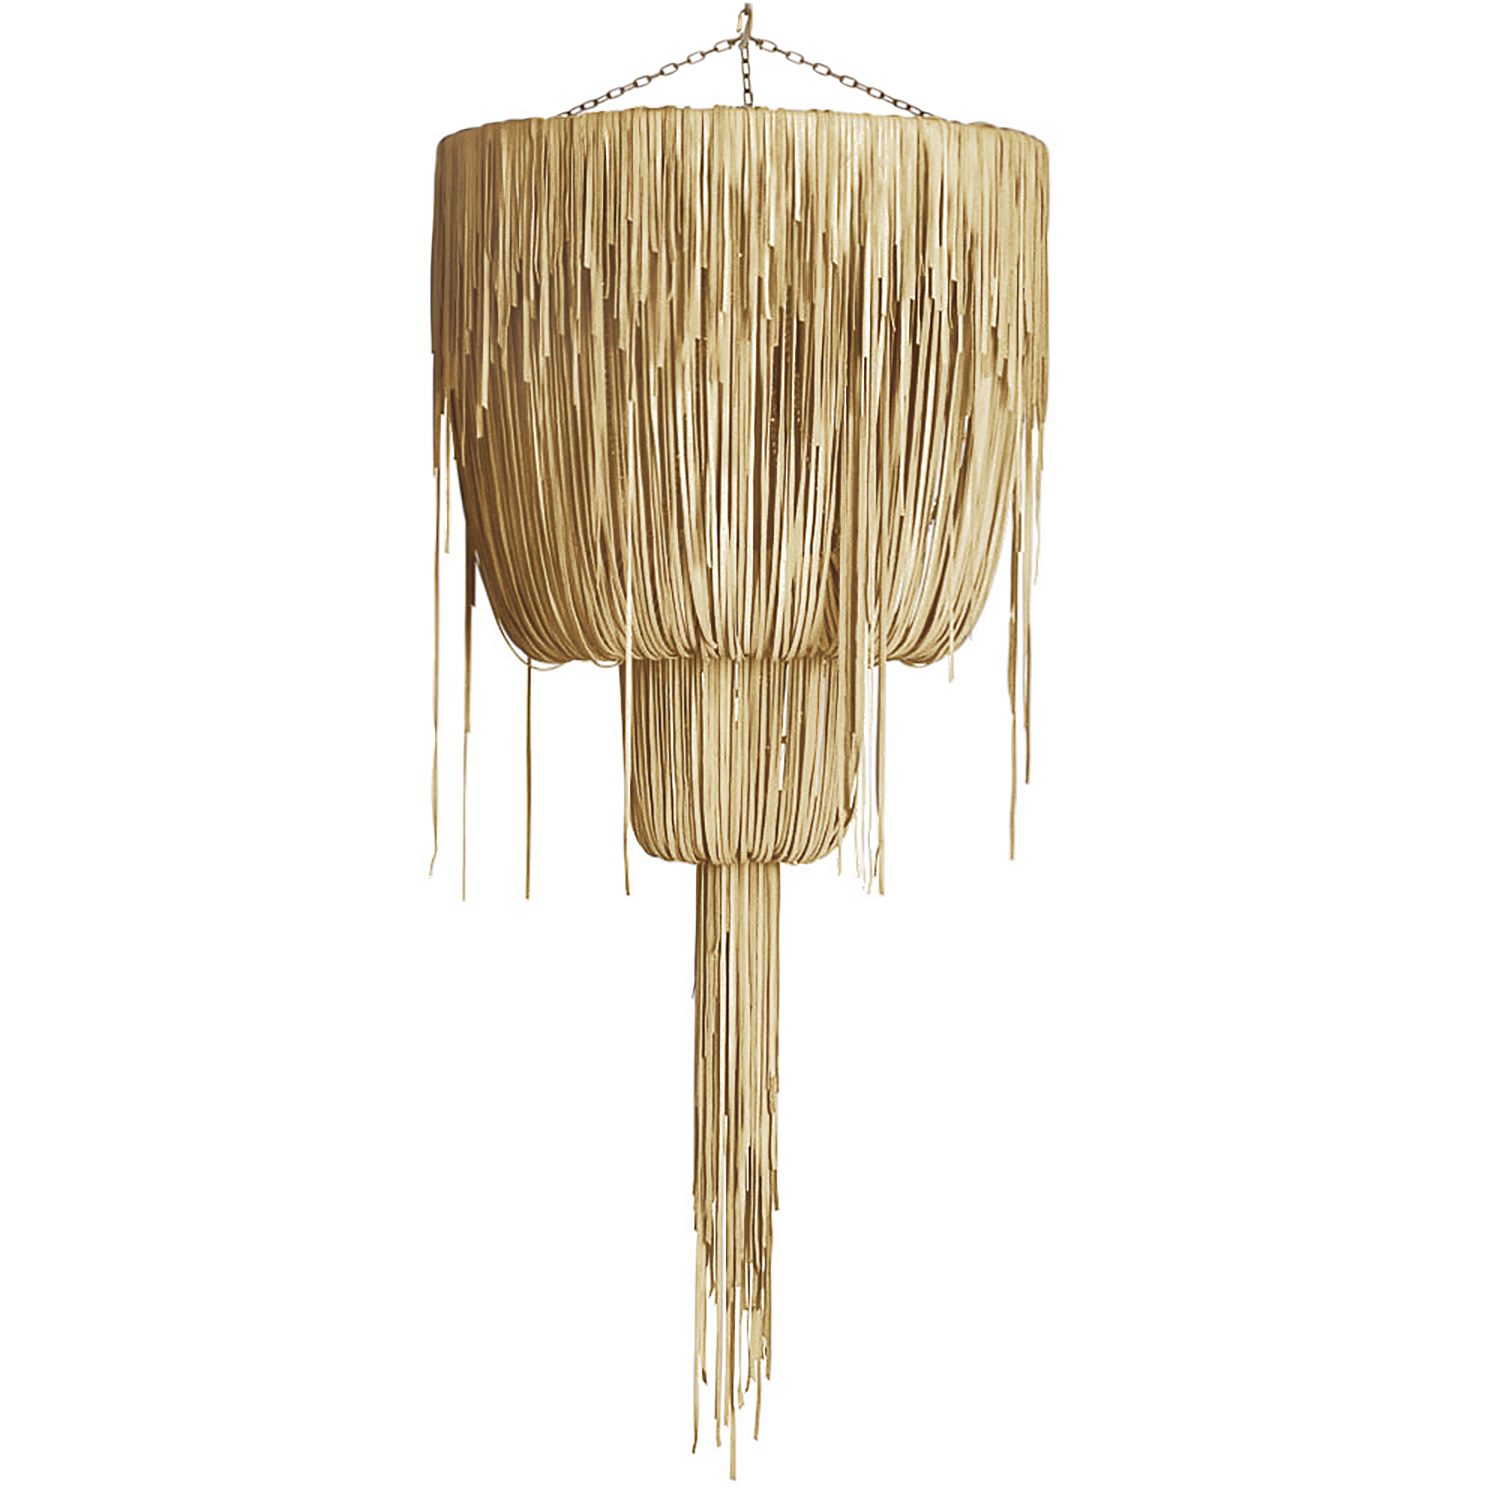 Urchin Chandelier - Large Double-Ball - Metallic Leather (Made to Order)